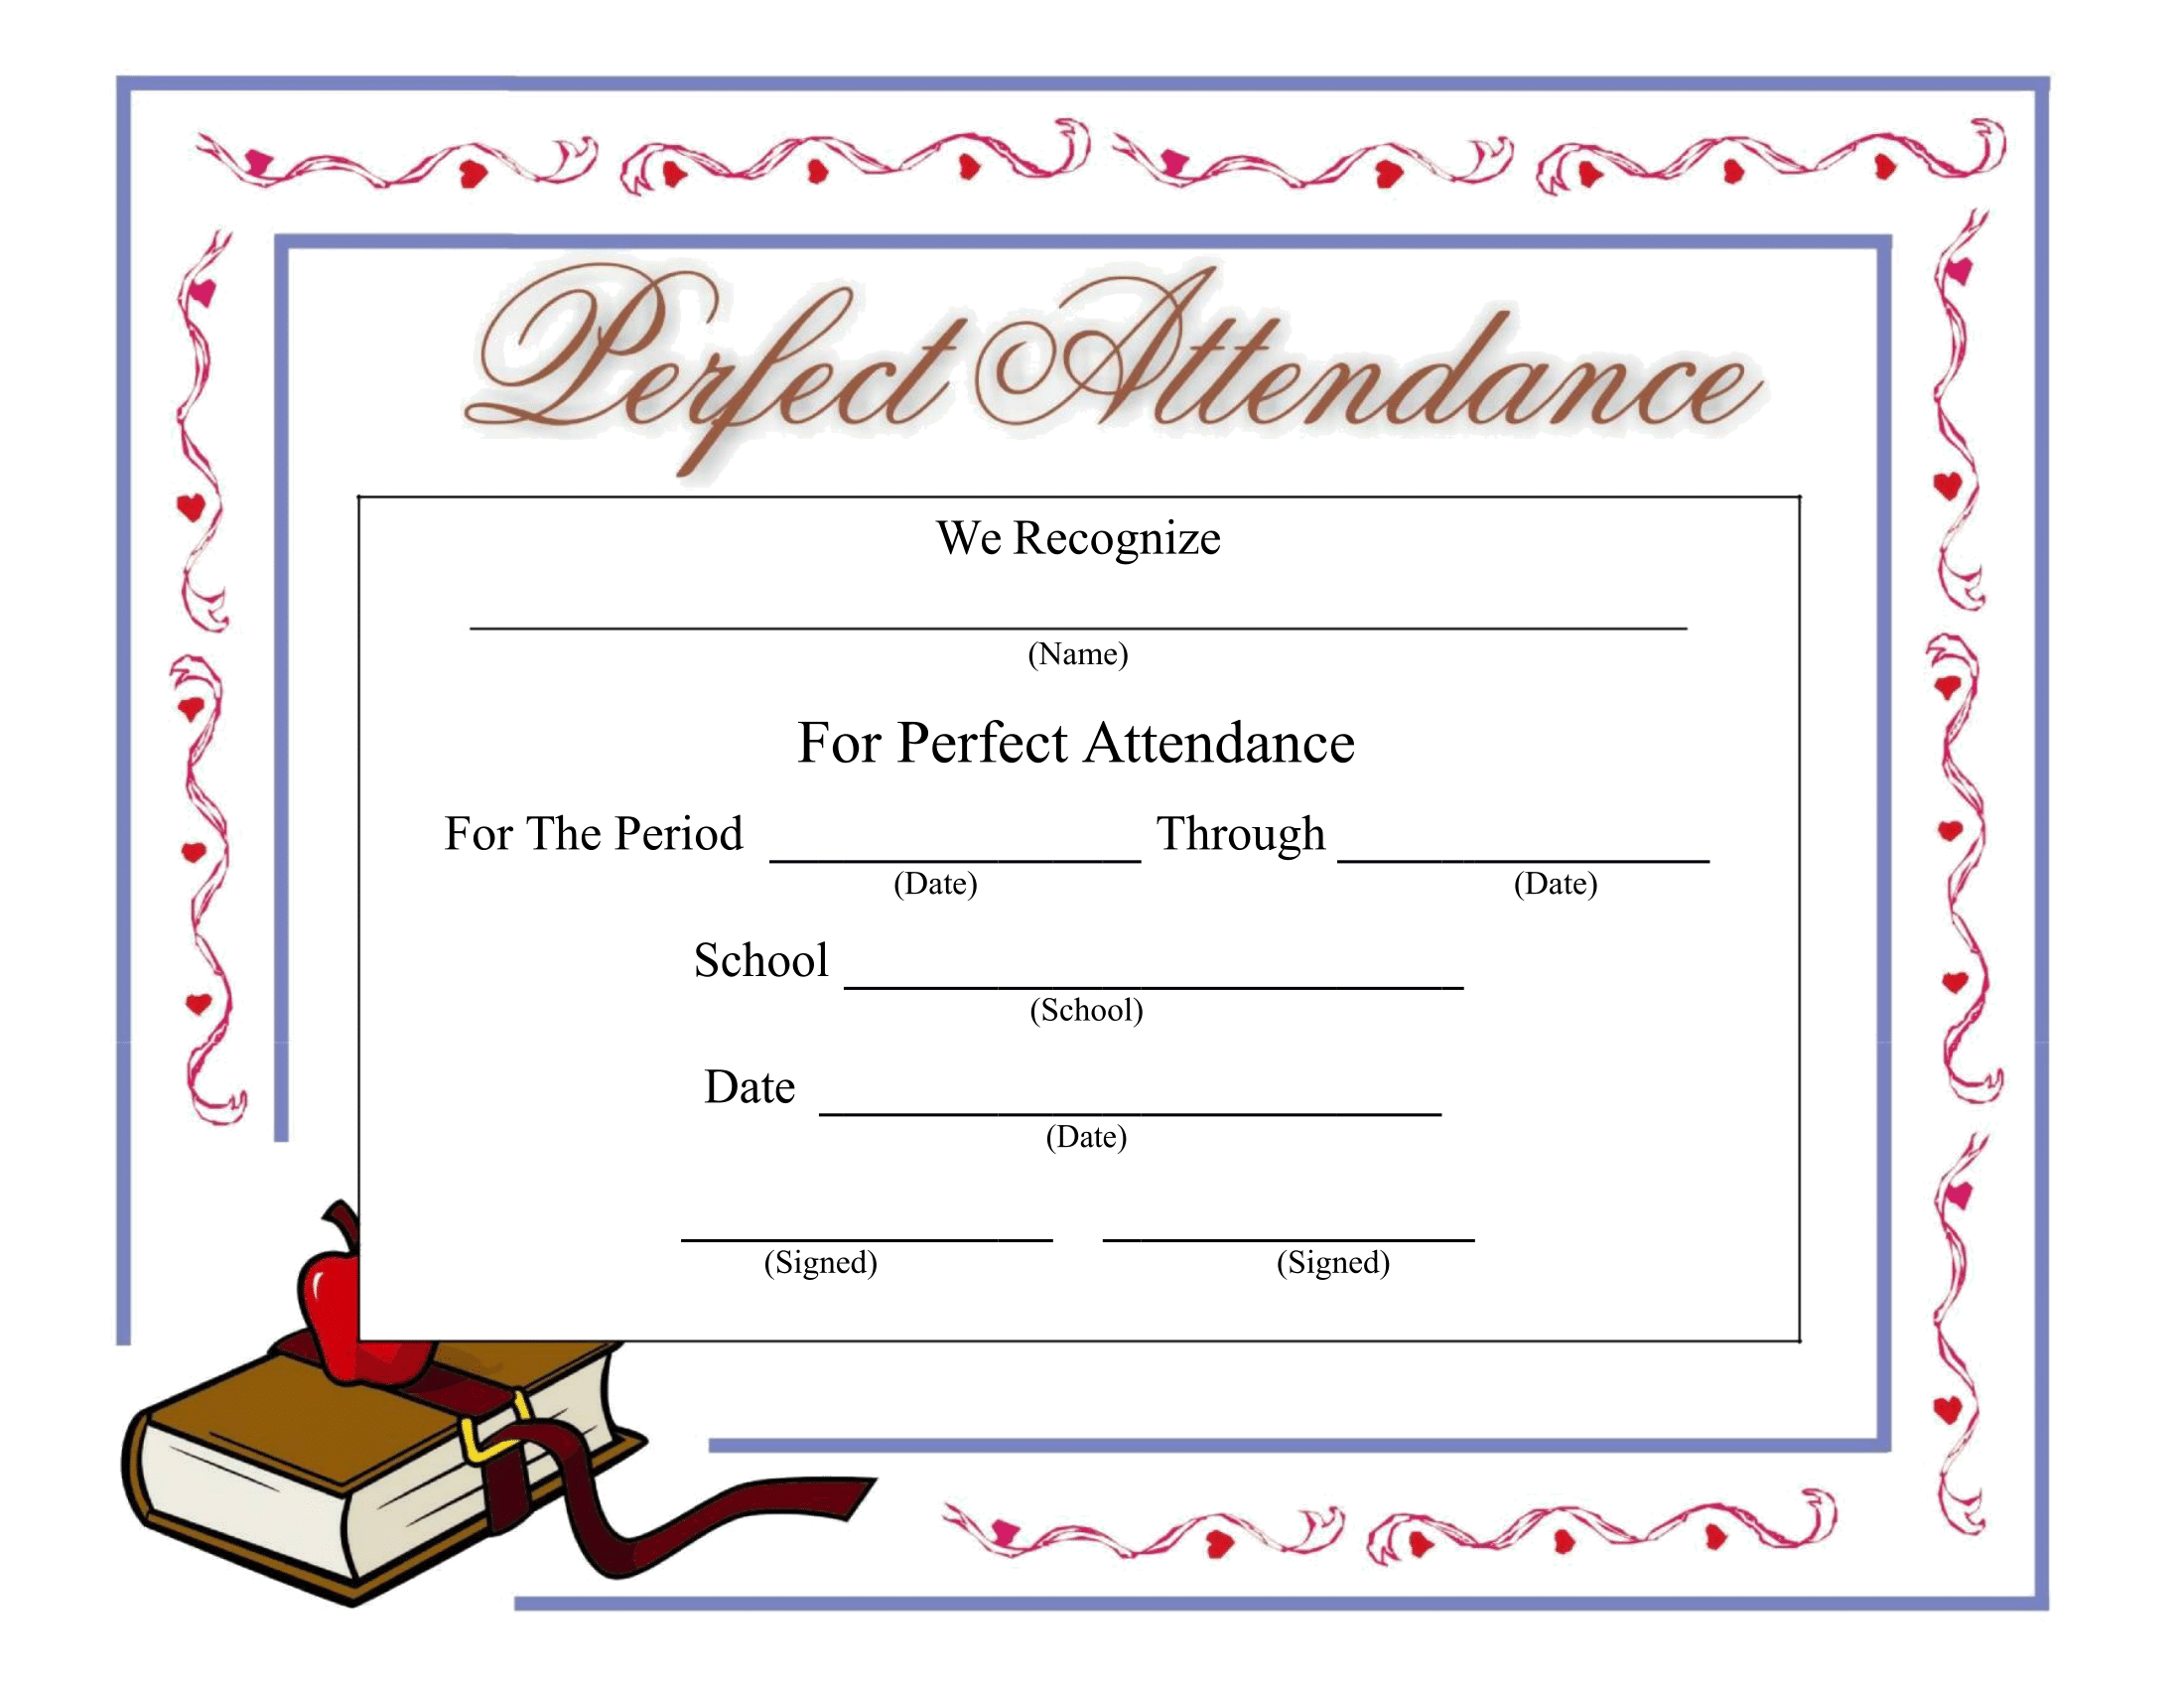 Perfect Attendance Certificate U2013 Download A FREE Template  Attendance Certificates Free Templates